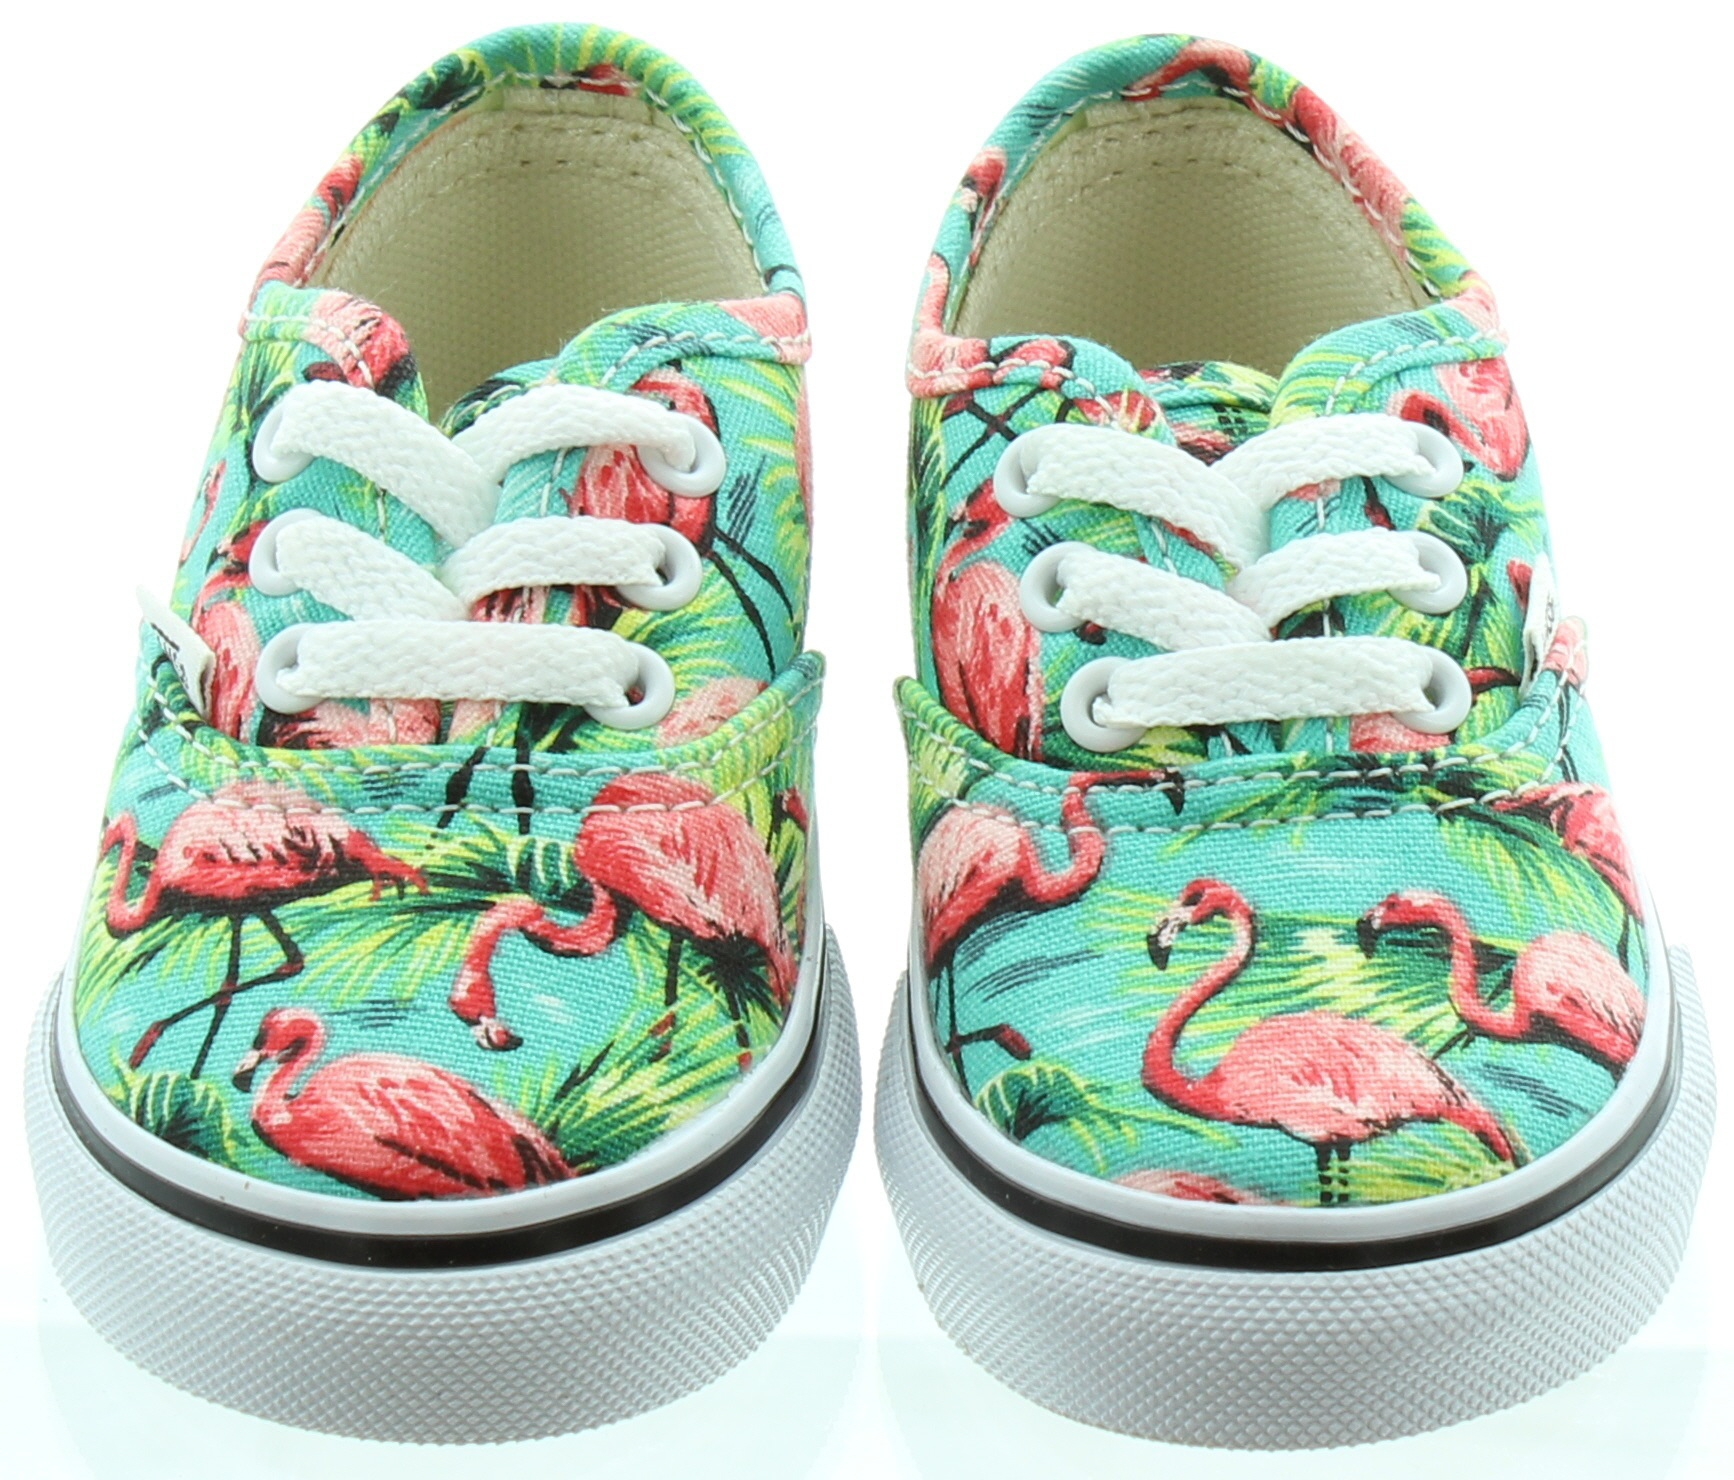 Shoes Pacsun | Turquoise Vans Womens | Flamingo Vans